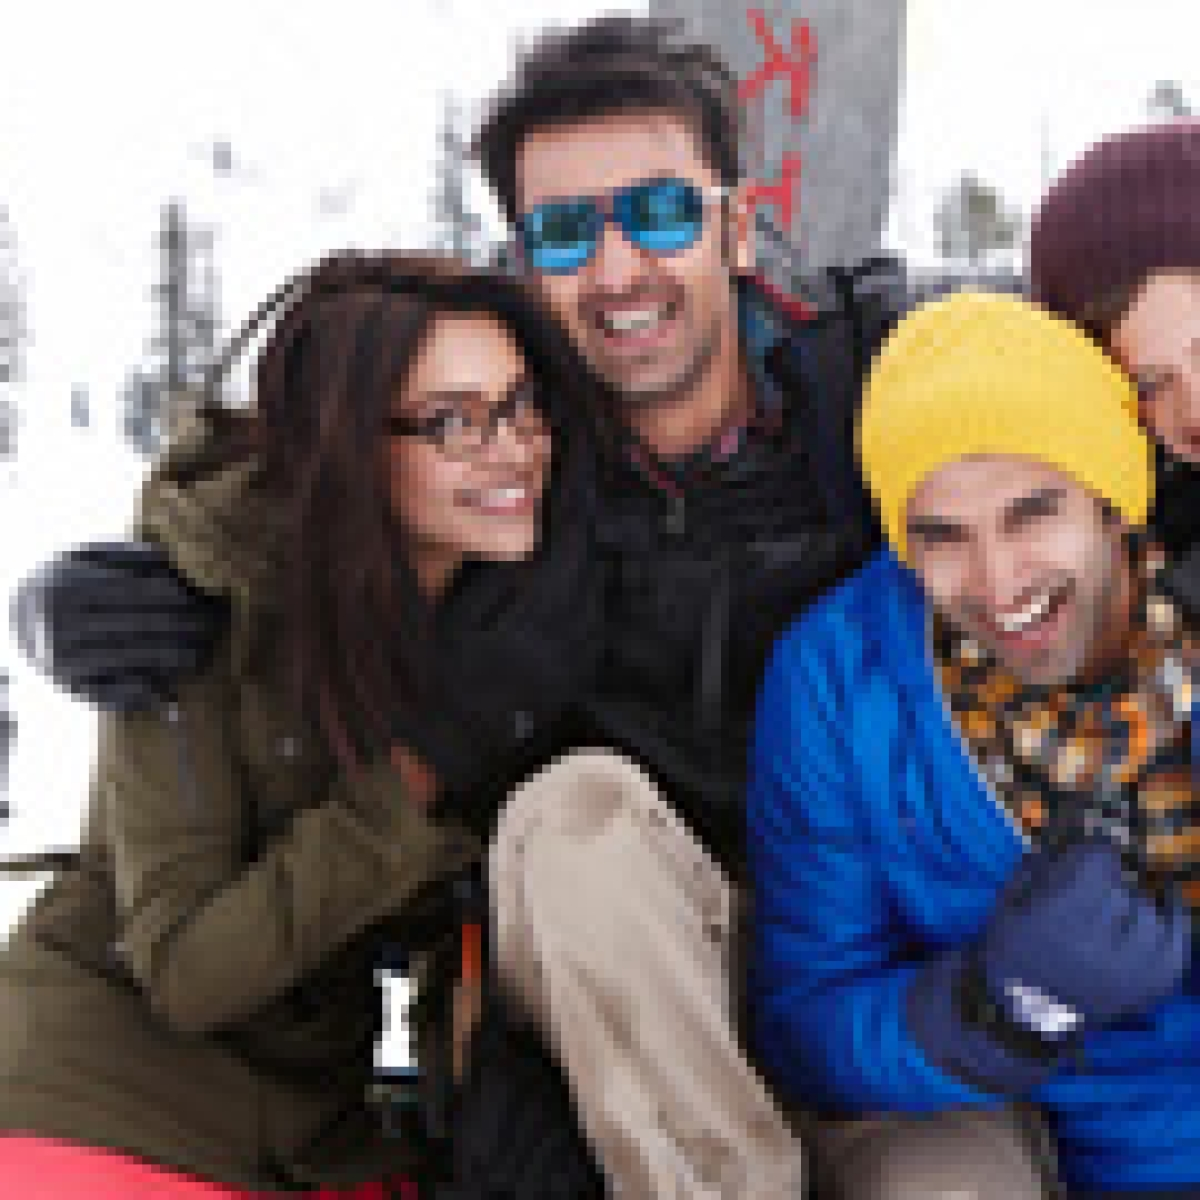 Karan Johar gets nostalgic as 'Yeh Jawaani Hai Deewani' clocks 7 years